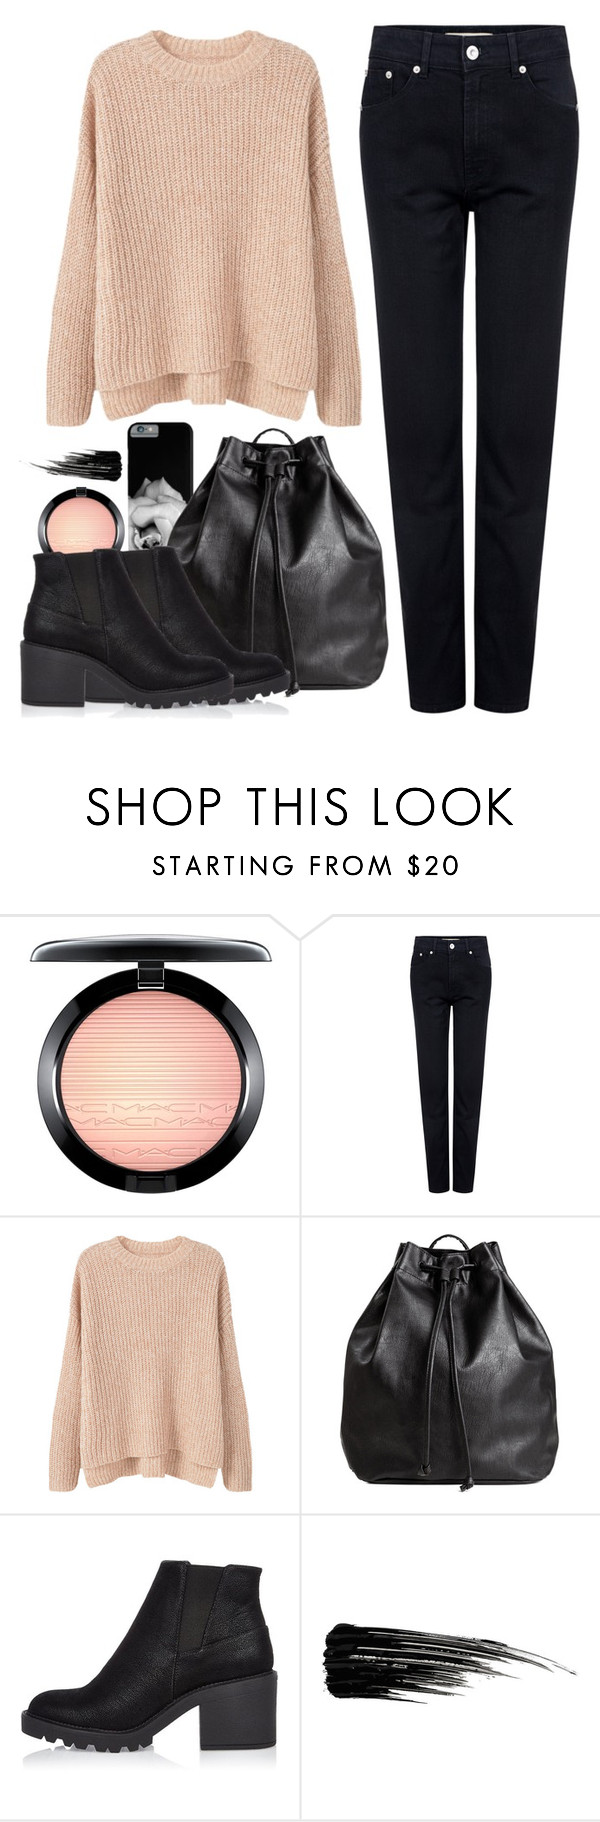 OOTD - Winter Casual by by-jwp on Polyvore featuring MANGO, Être Cécile, River Island, H&M, MAC Cosmetics and Urban Decay